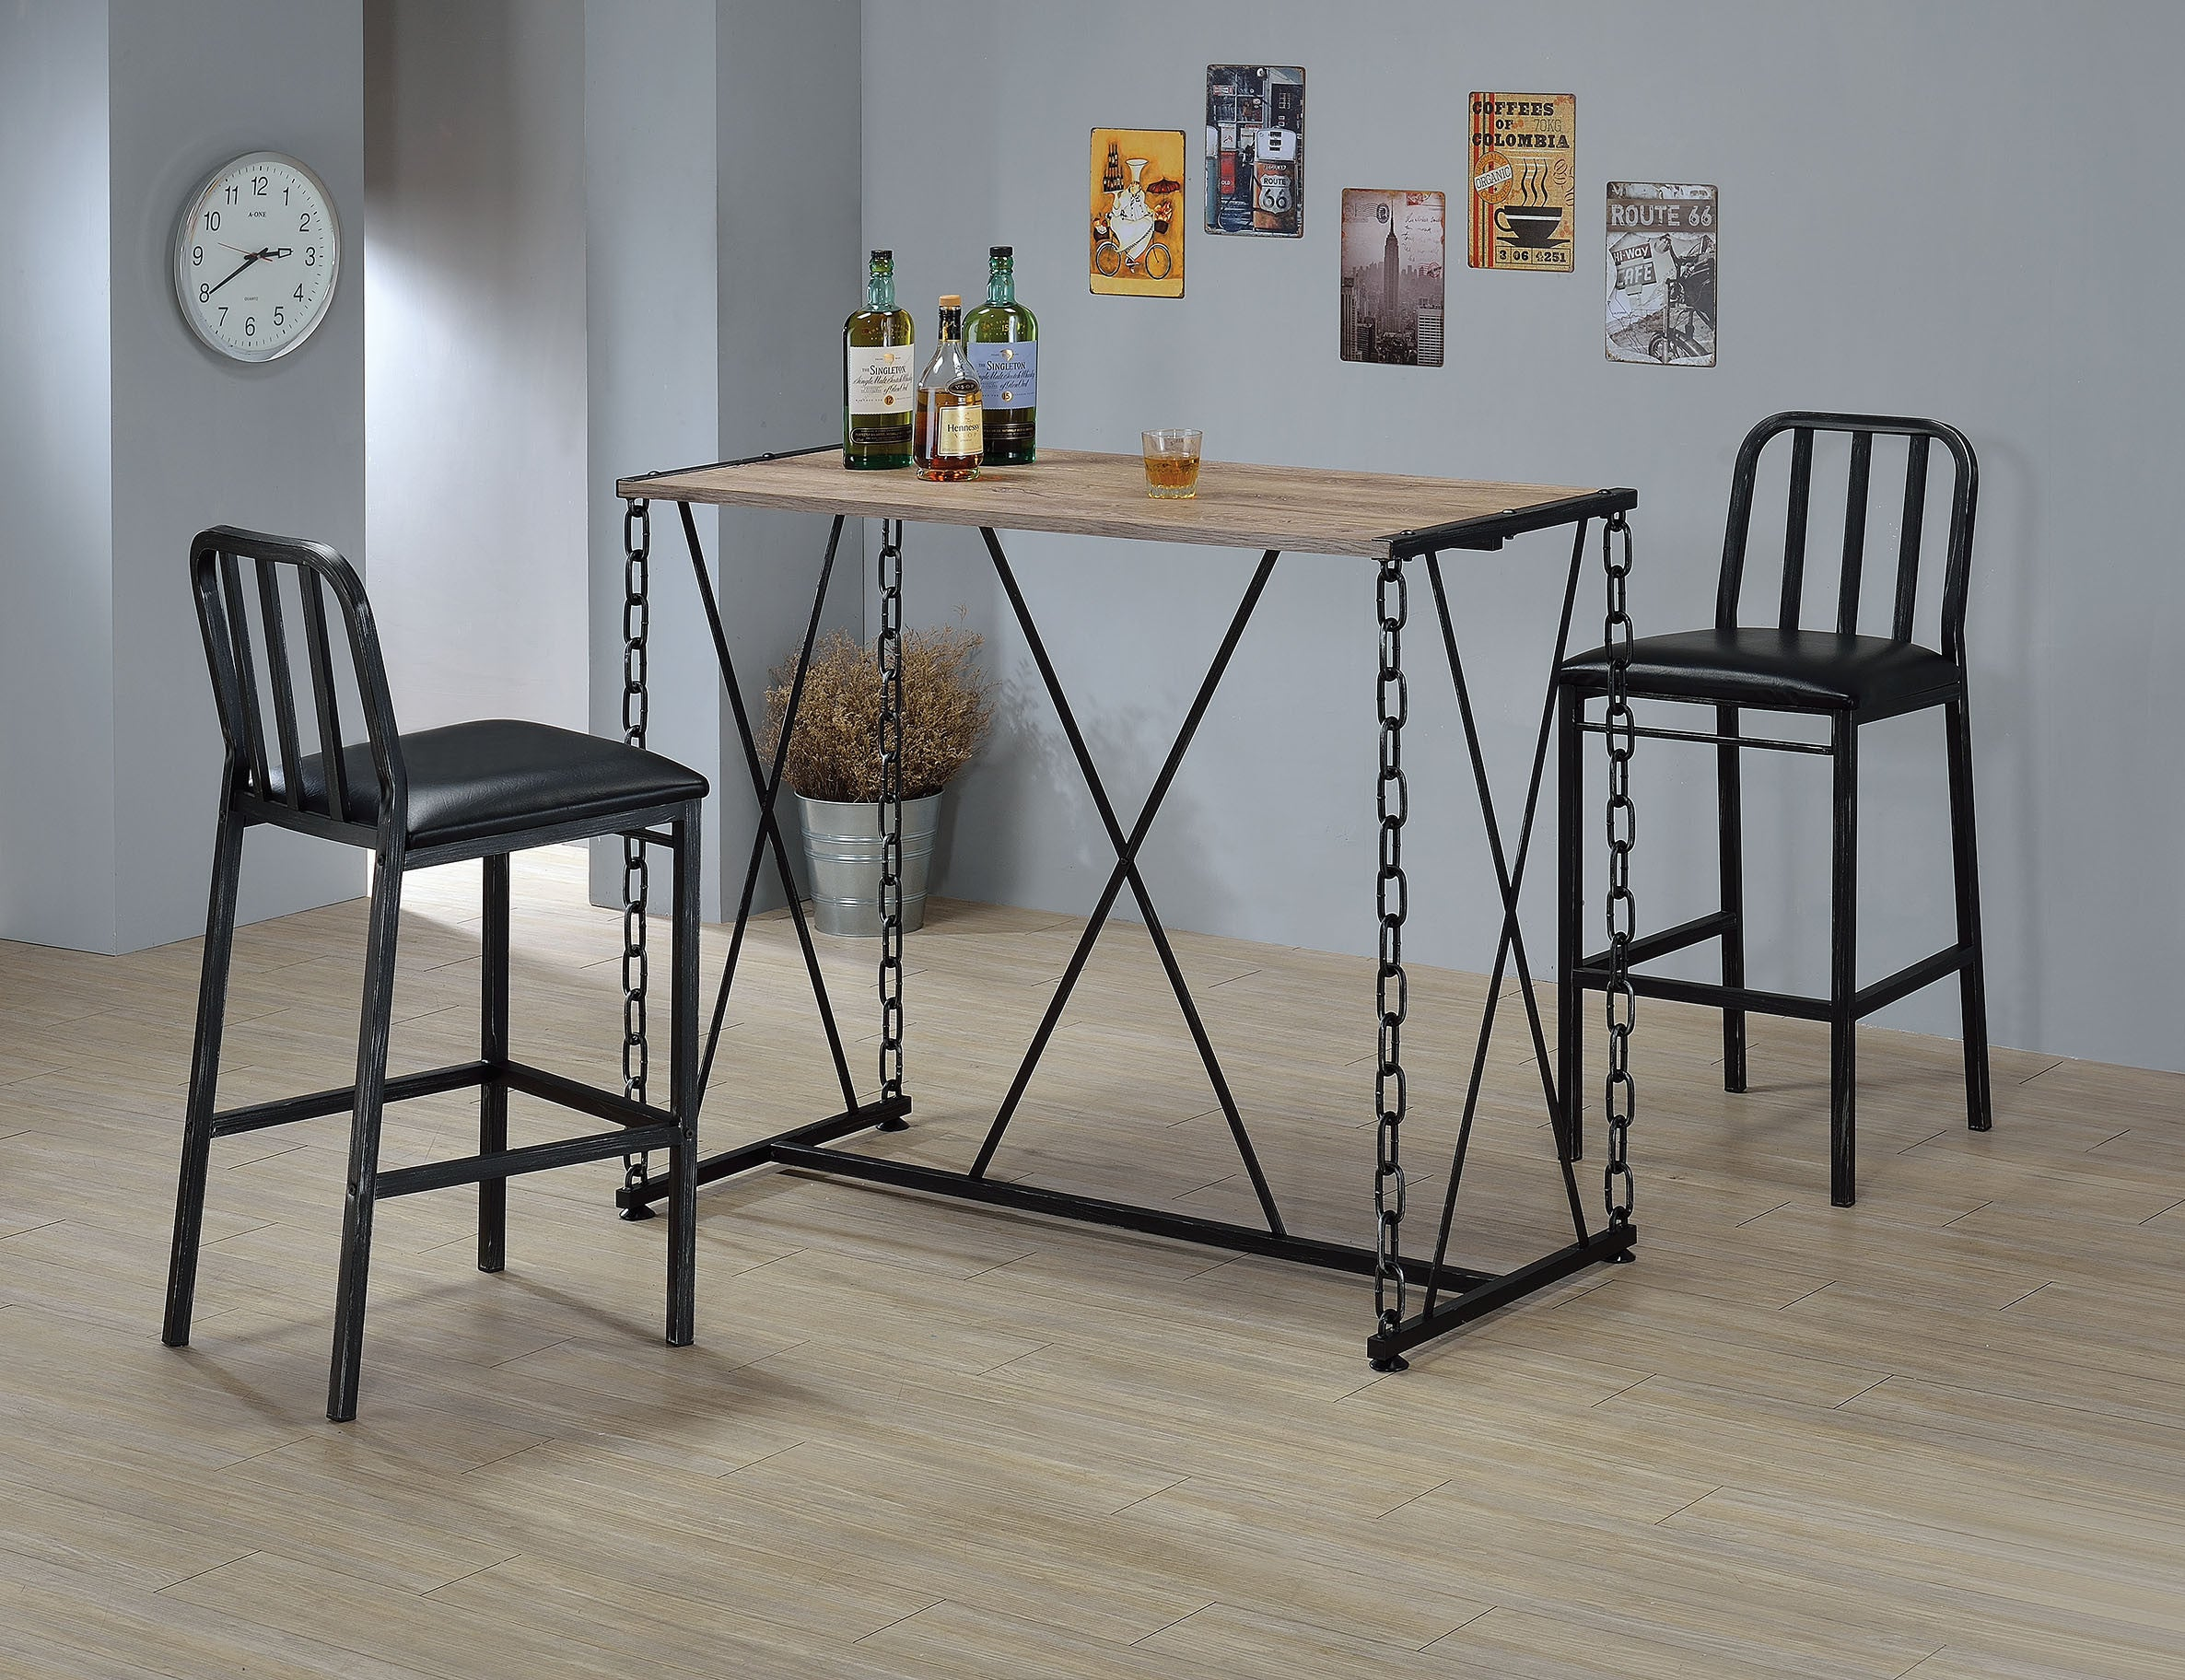 Shop For Bar Furniture At Homegazers ACME Jarvis Table In Mirror Acme Jodie Chair Set 2 Kite White